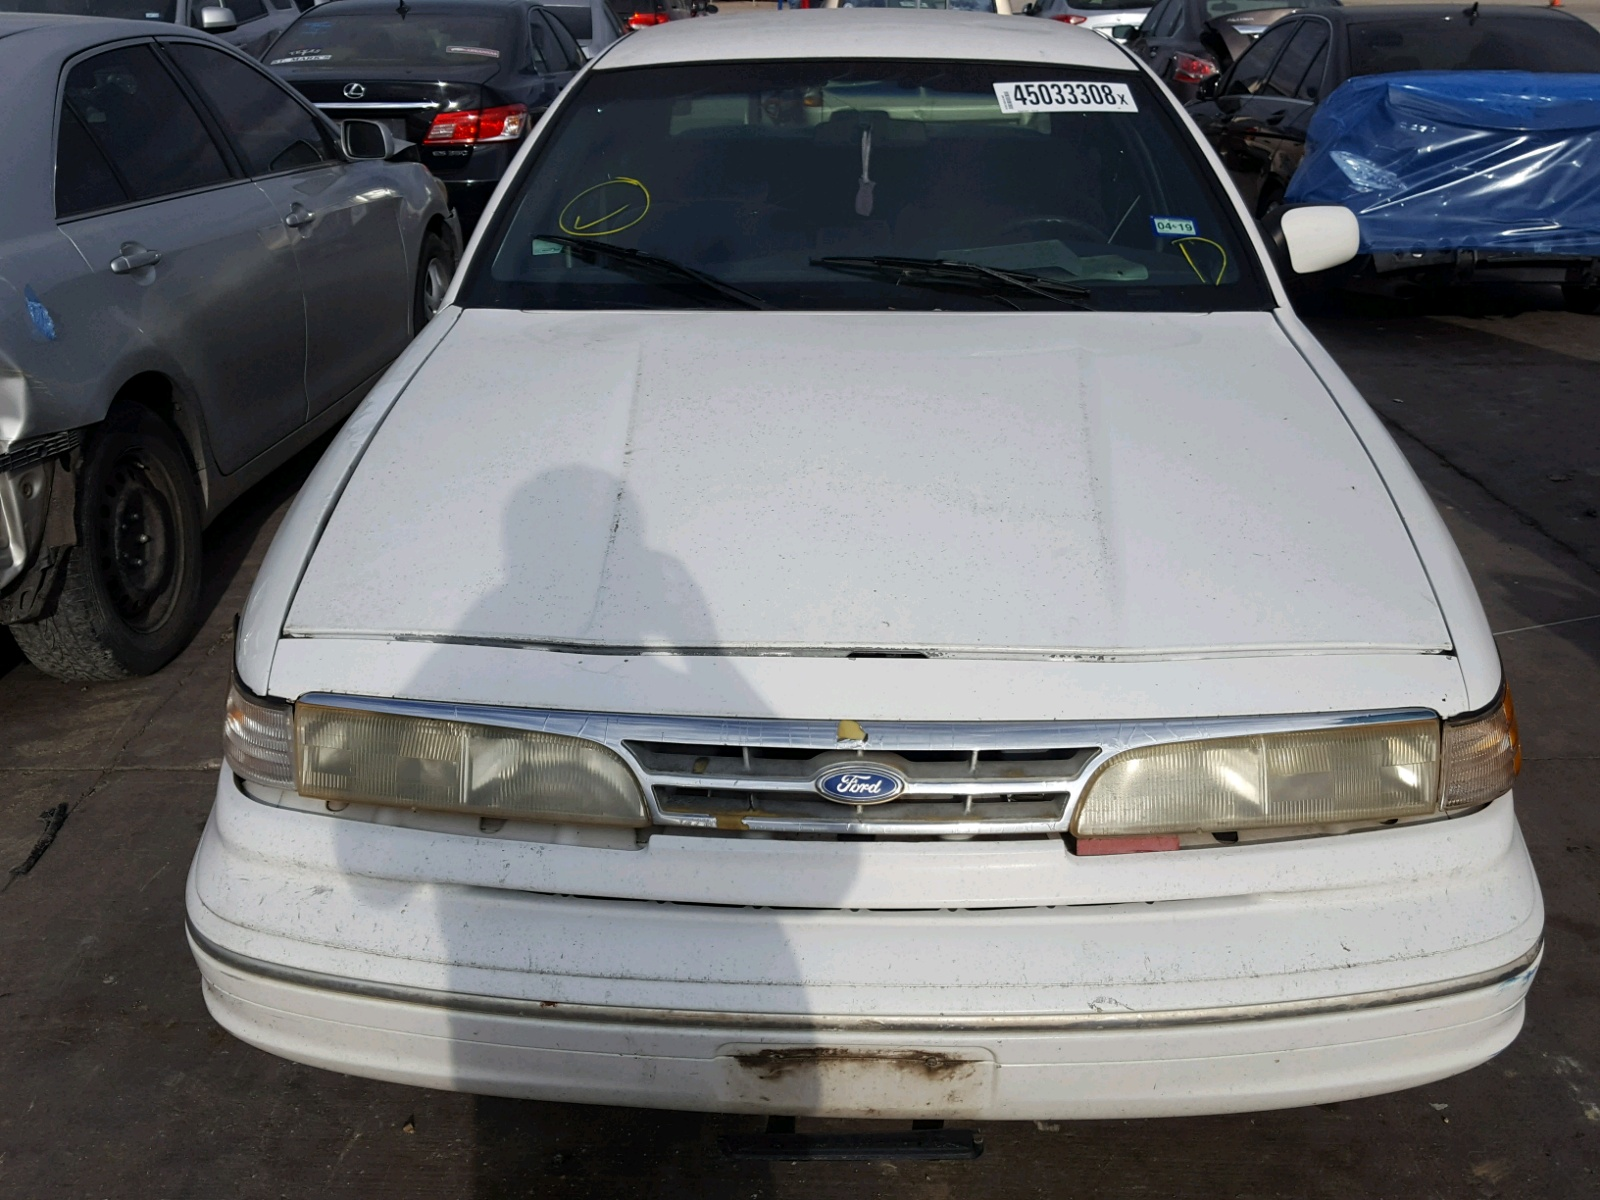 2falp73w1sx106100 1995 White Ford Crown Vict On Sale In Tx Victoria 46l Engine View